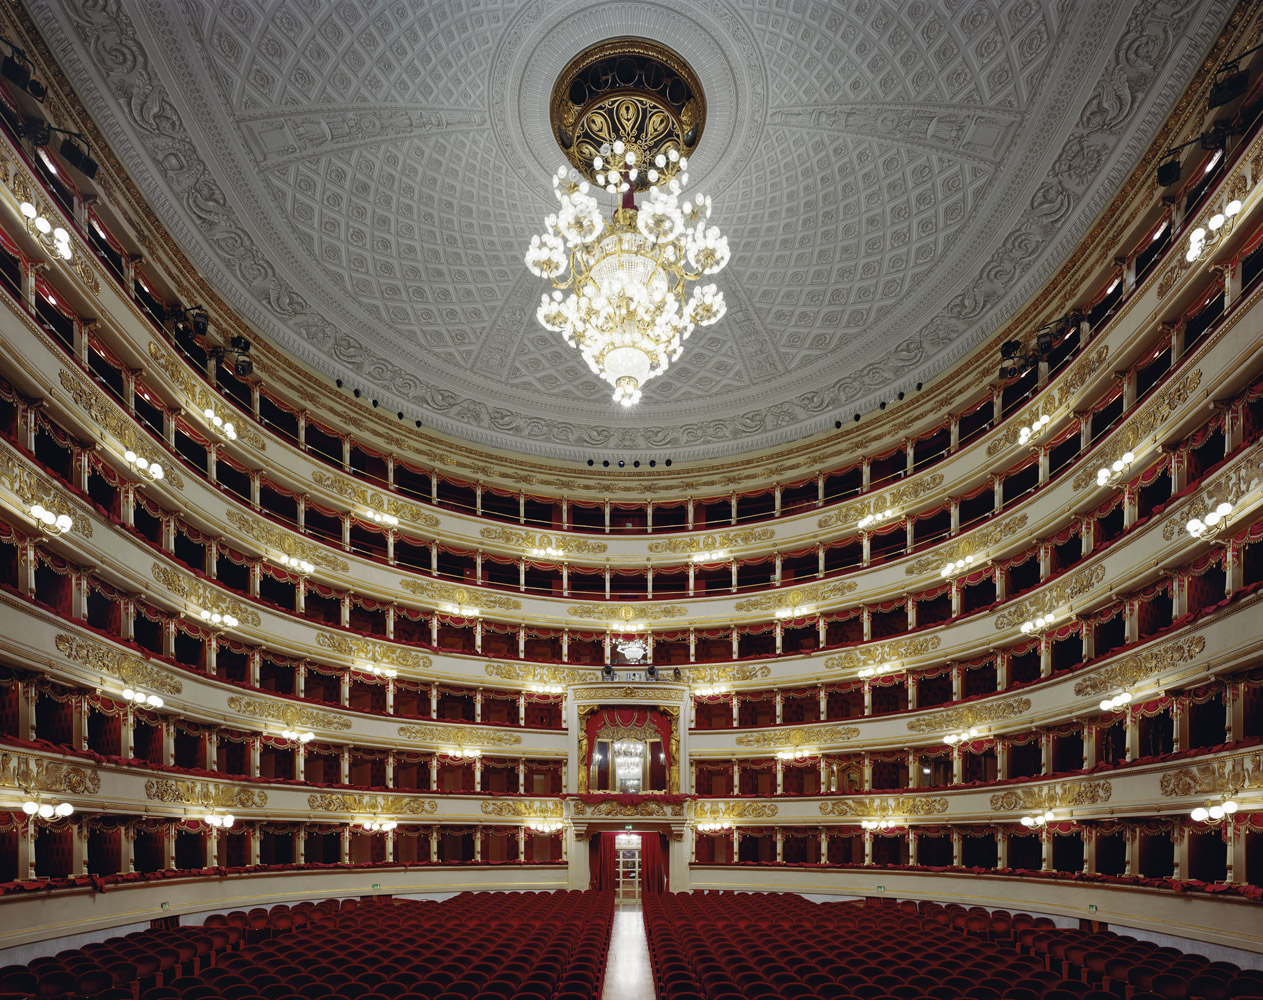 Teatro alla Scala, Milan, Italy, 2008, by David Leventi. Fujicolor Crystal Archive print on Dibond of the interior of the La Scala opera house.